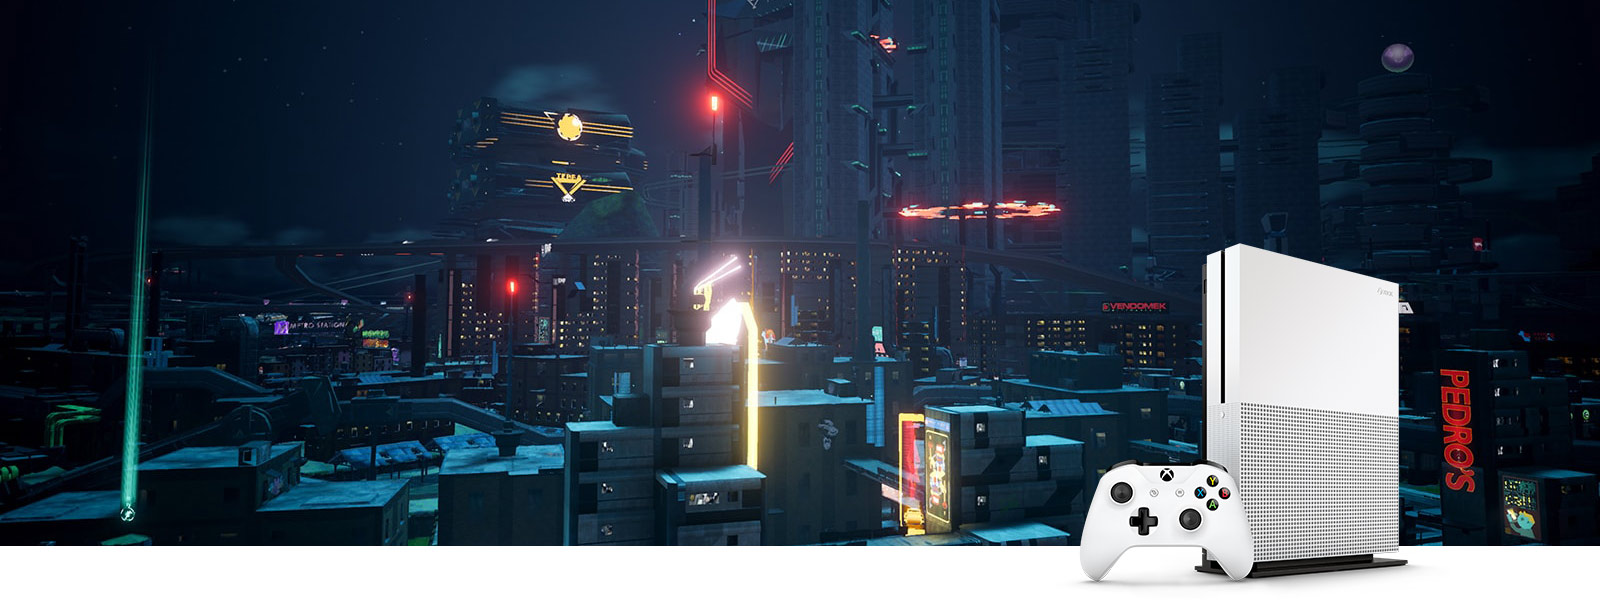 Crackdown 3 cityscape screenshot and Xbox One S vertical console with controller, viewed without high dynamic range (HDR)